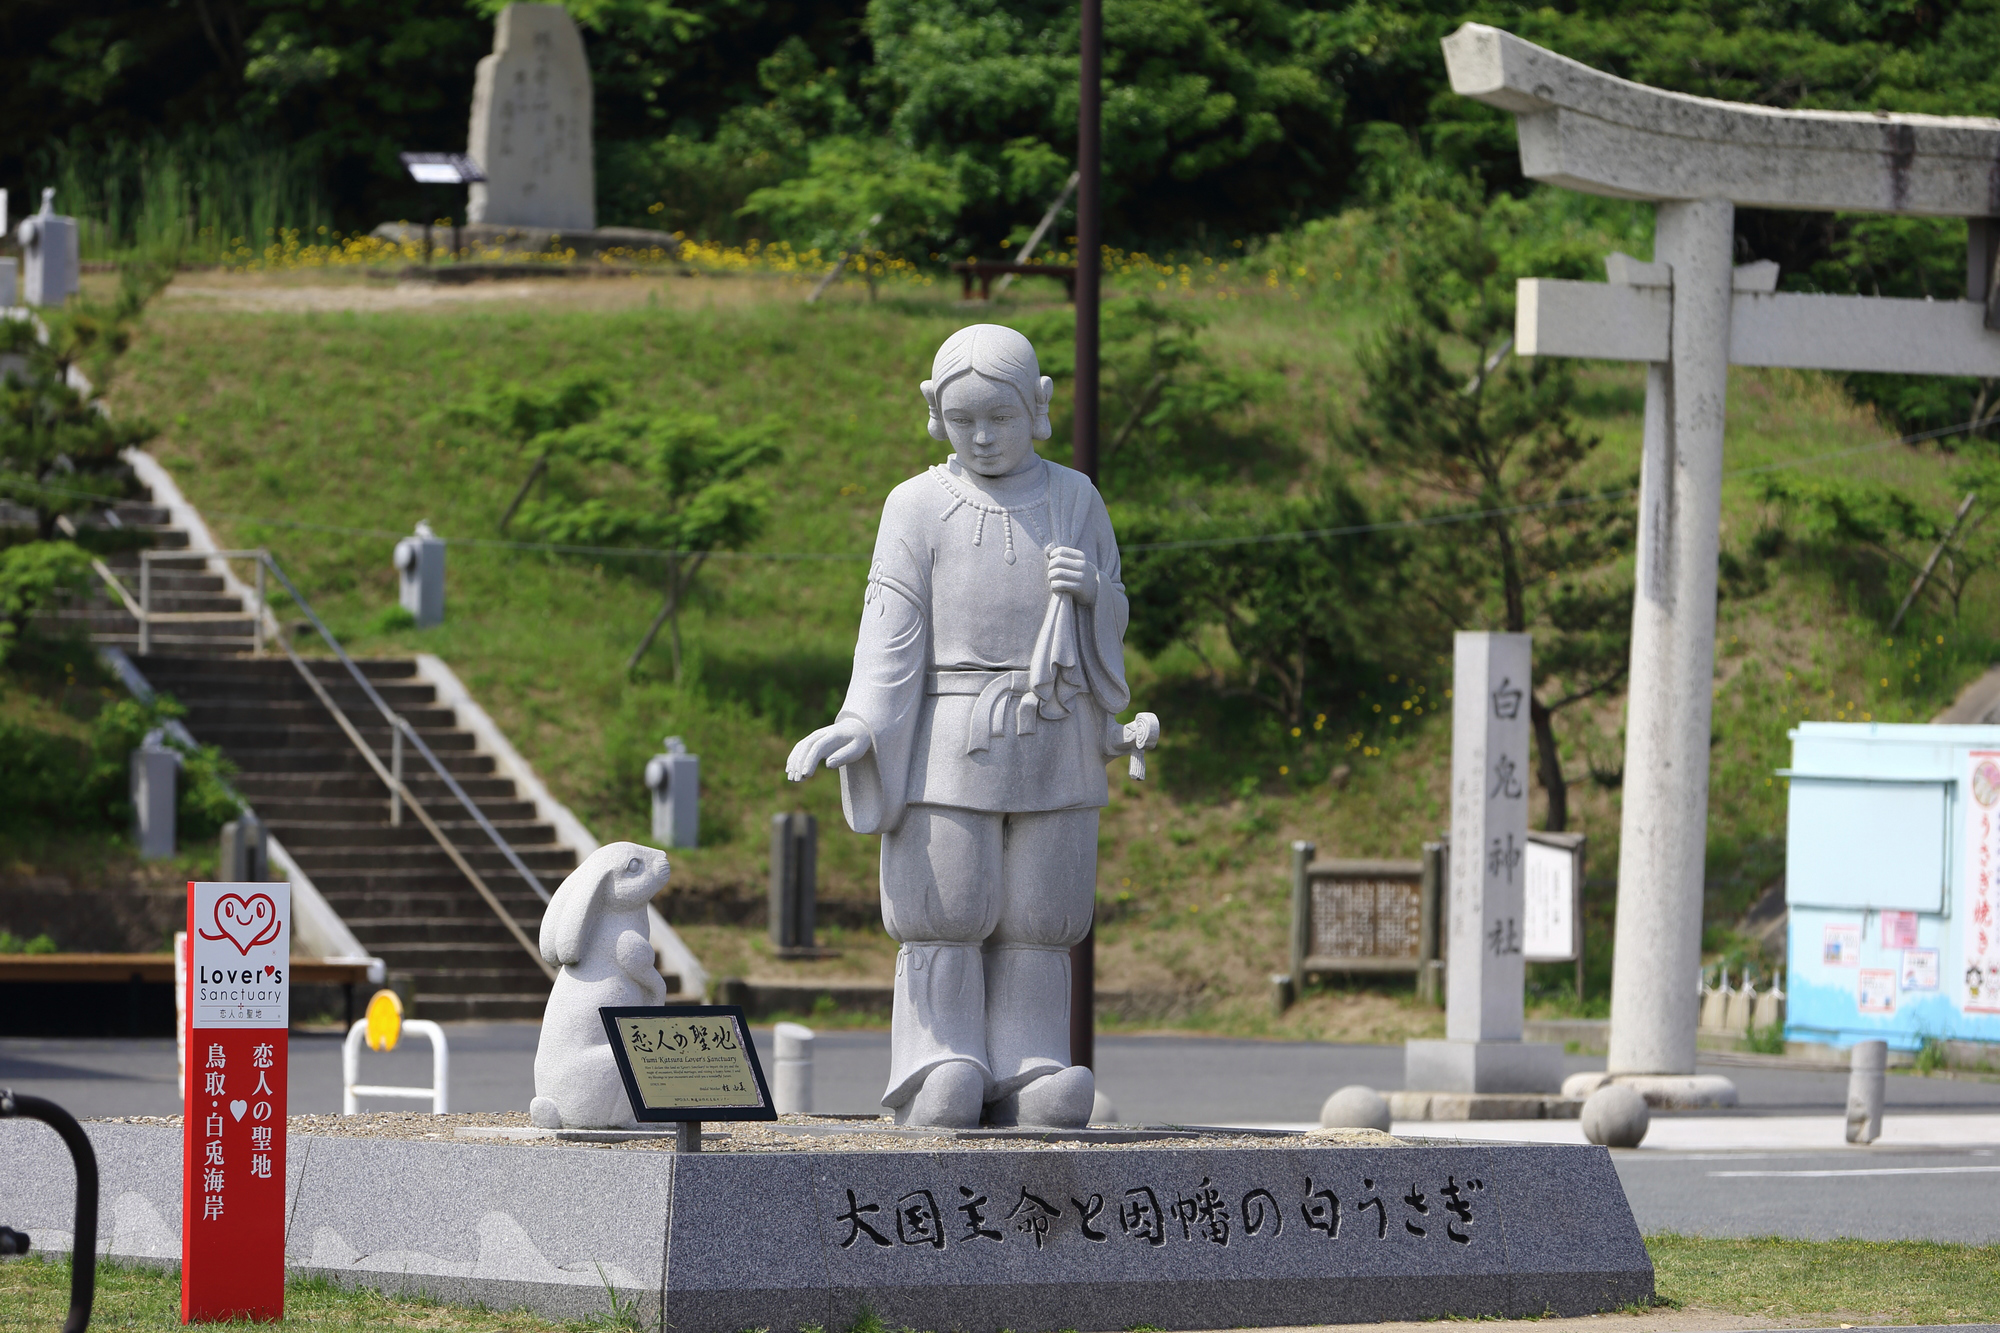 Stone statues of Okuninushi and the white rabbit stand along the Hakuto Coast, which is said to be the site of the myth.